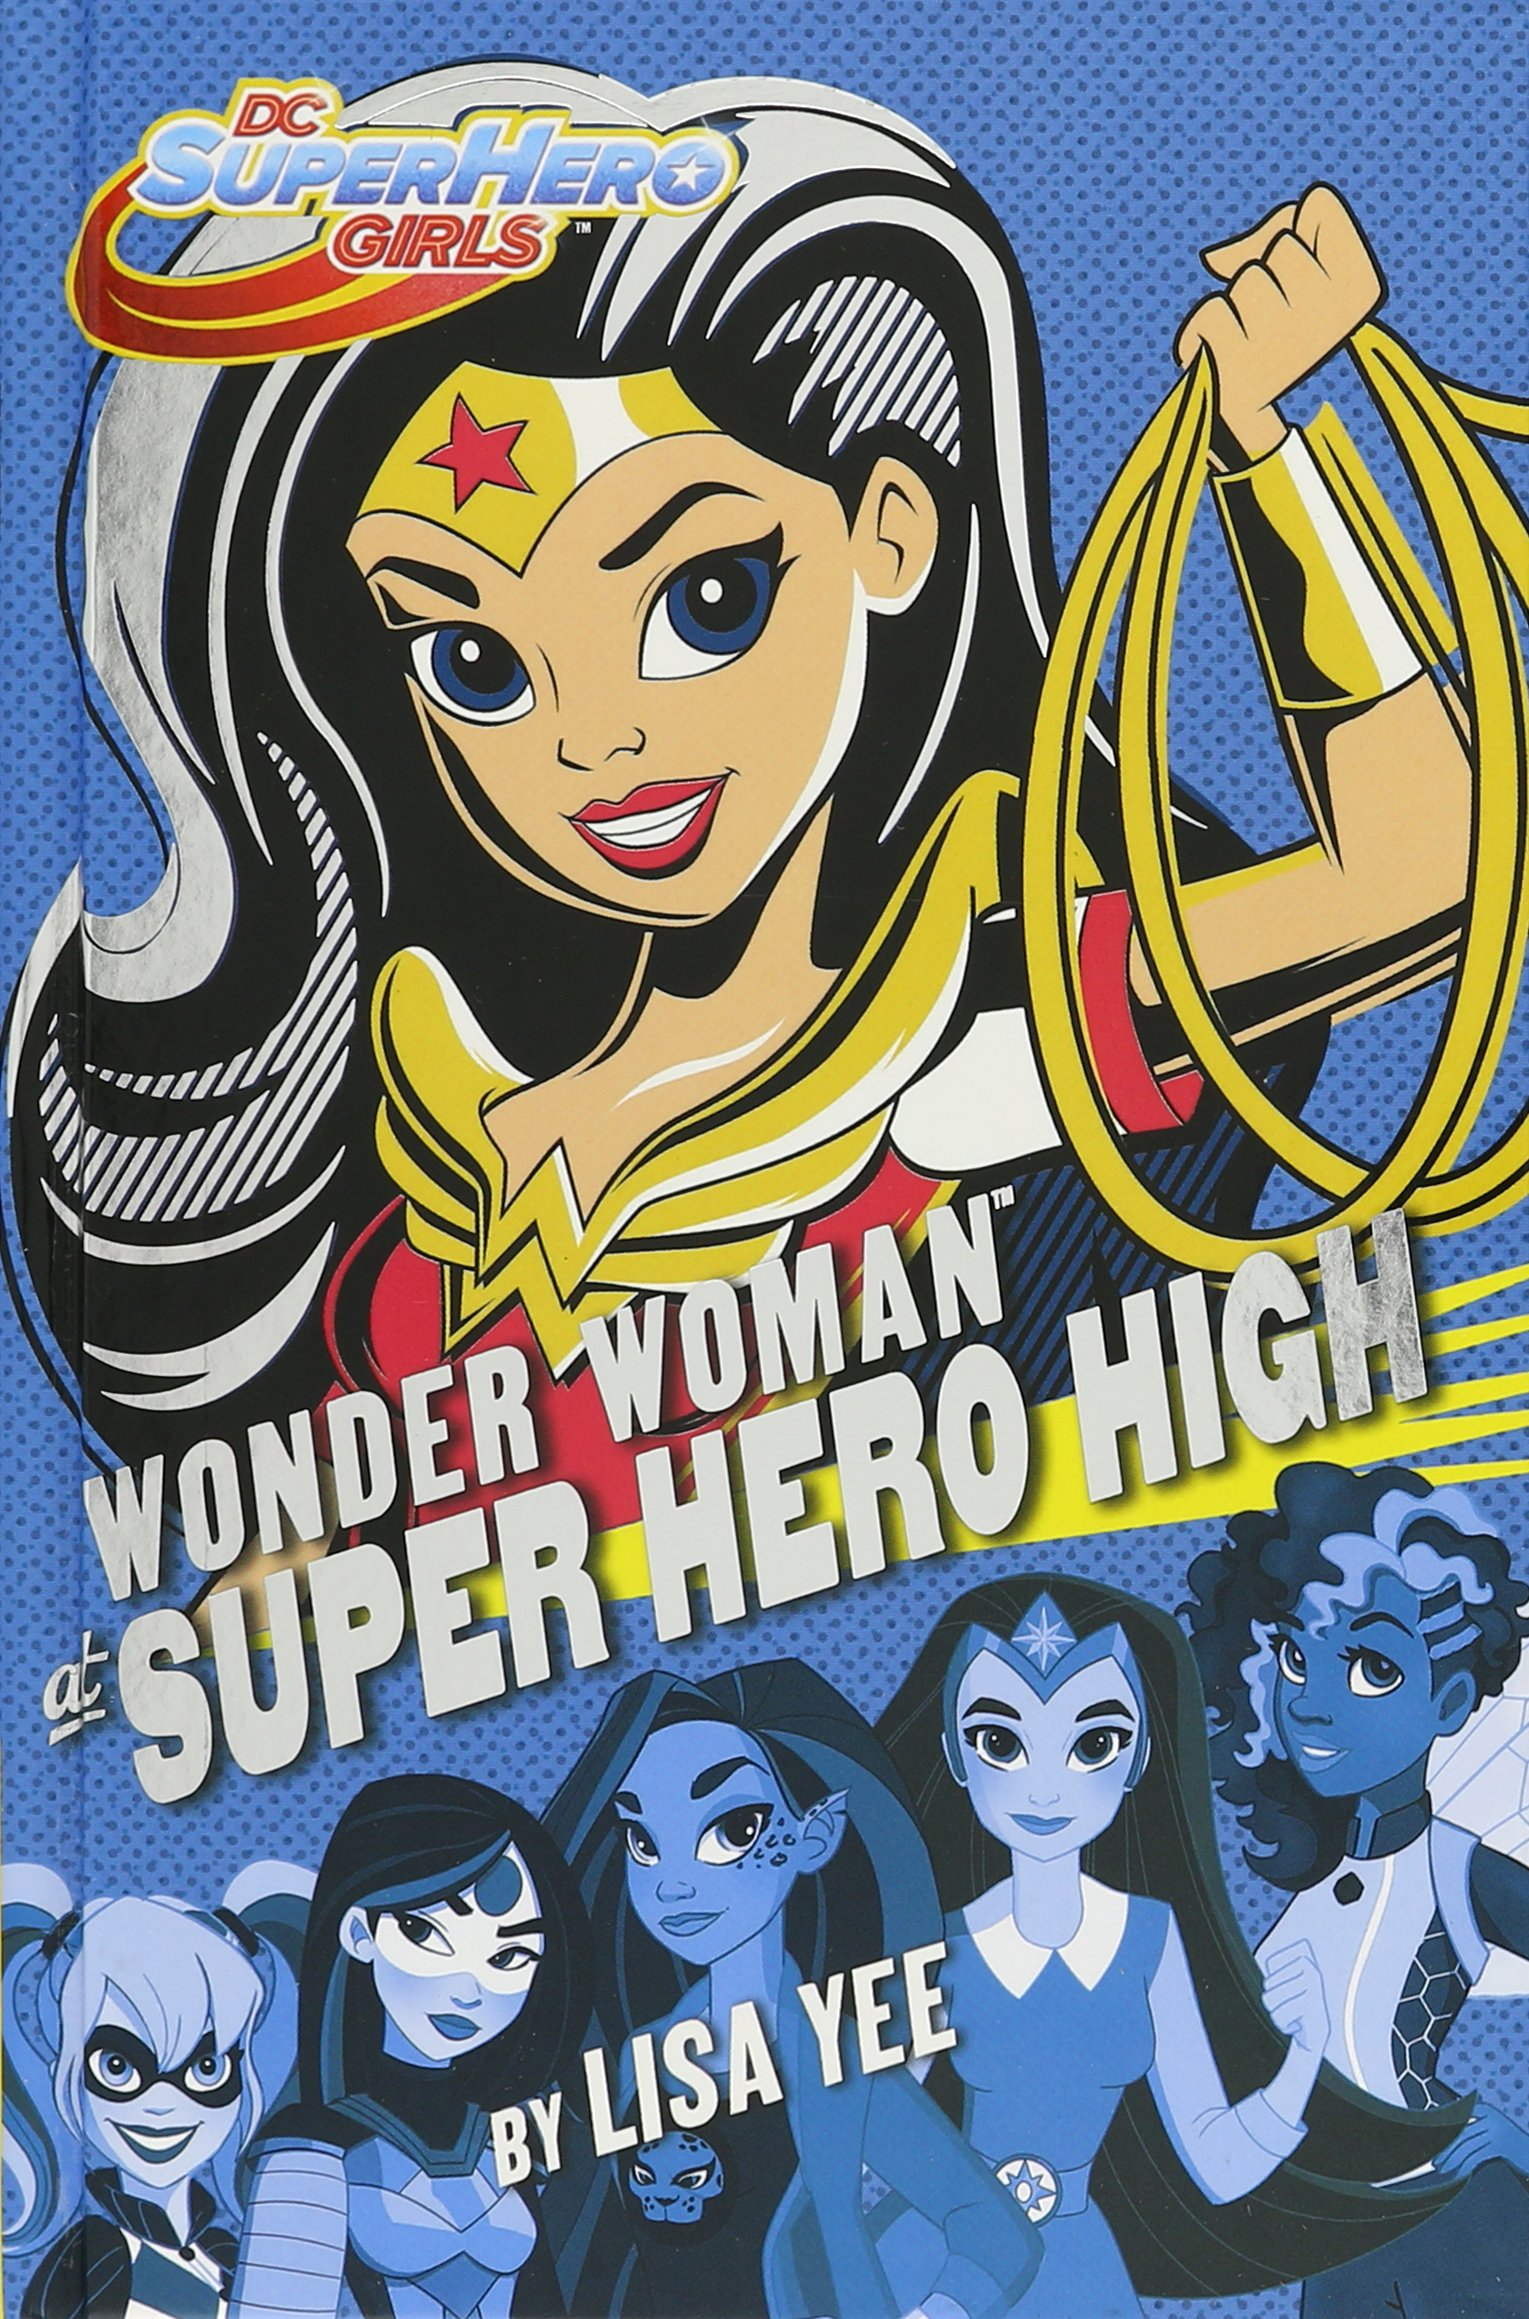 The DC Super Hero Girls Adventure Collection #1 (DC Super Hero Girls): Lisa  Yee, Random House: 9781524716318: Amazon.com: Books